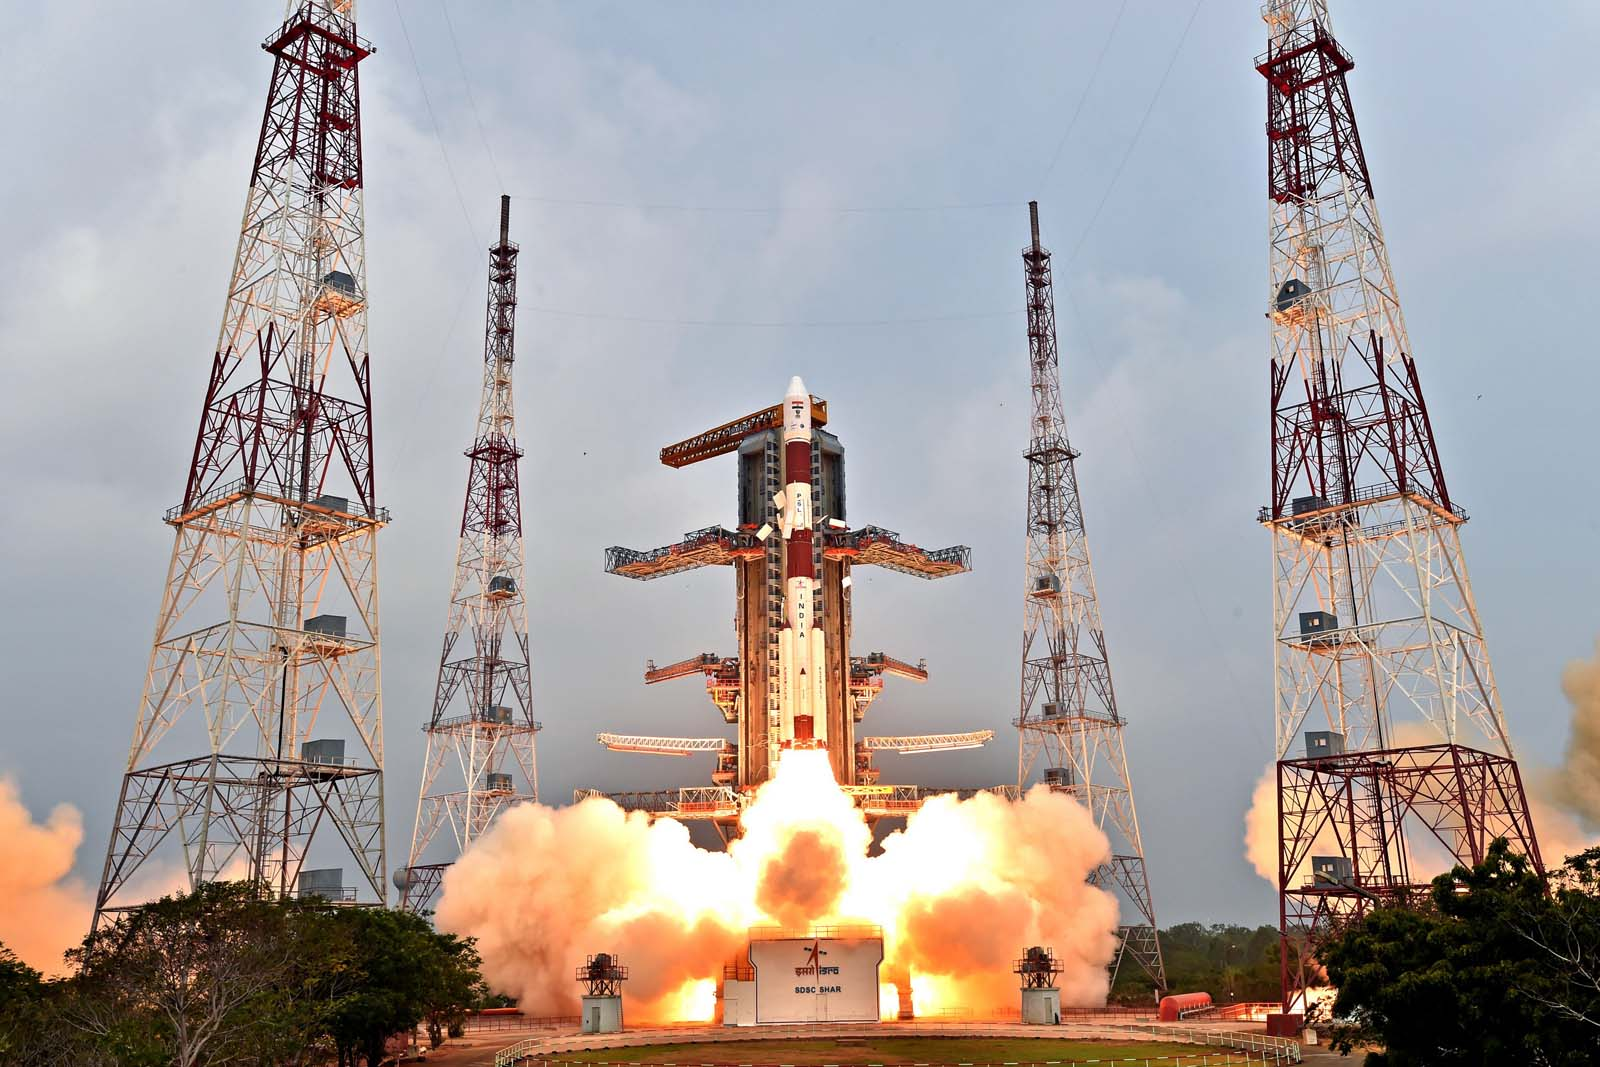 Joint venture of Isro and private firms to launch rocket by 2020